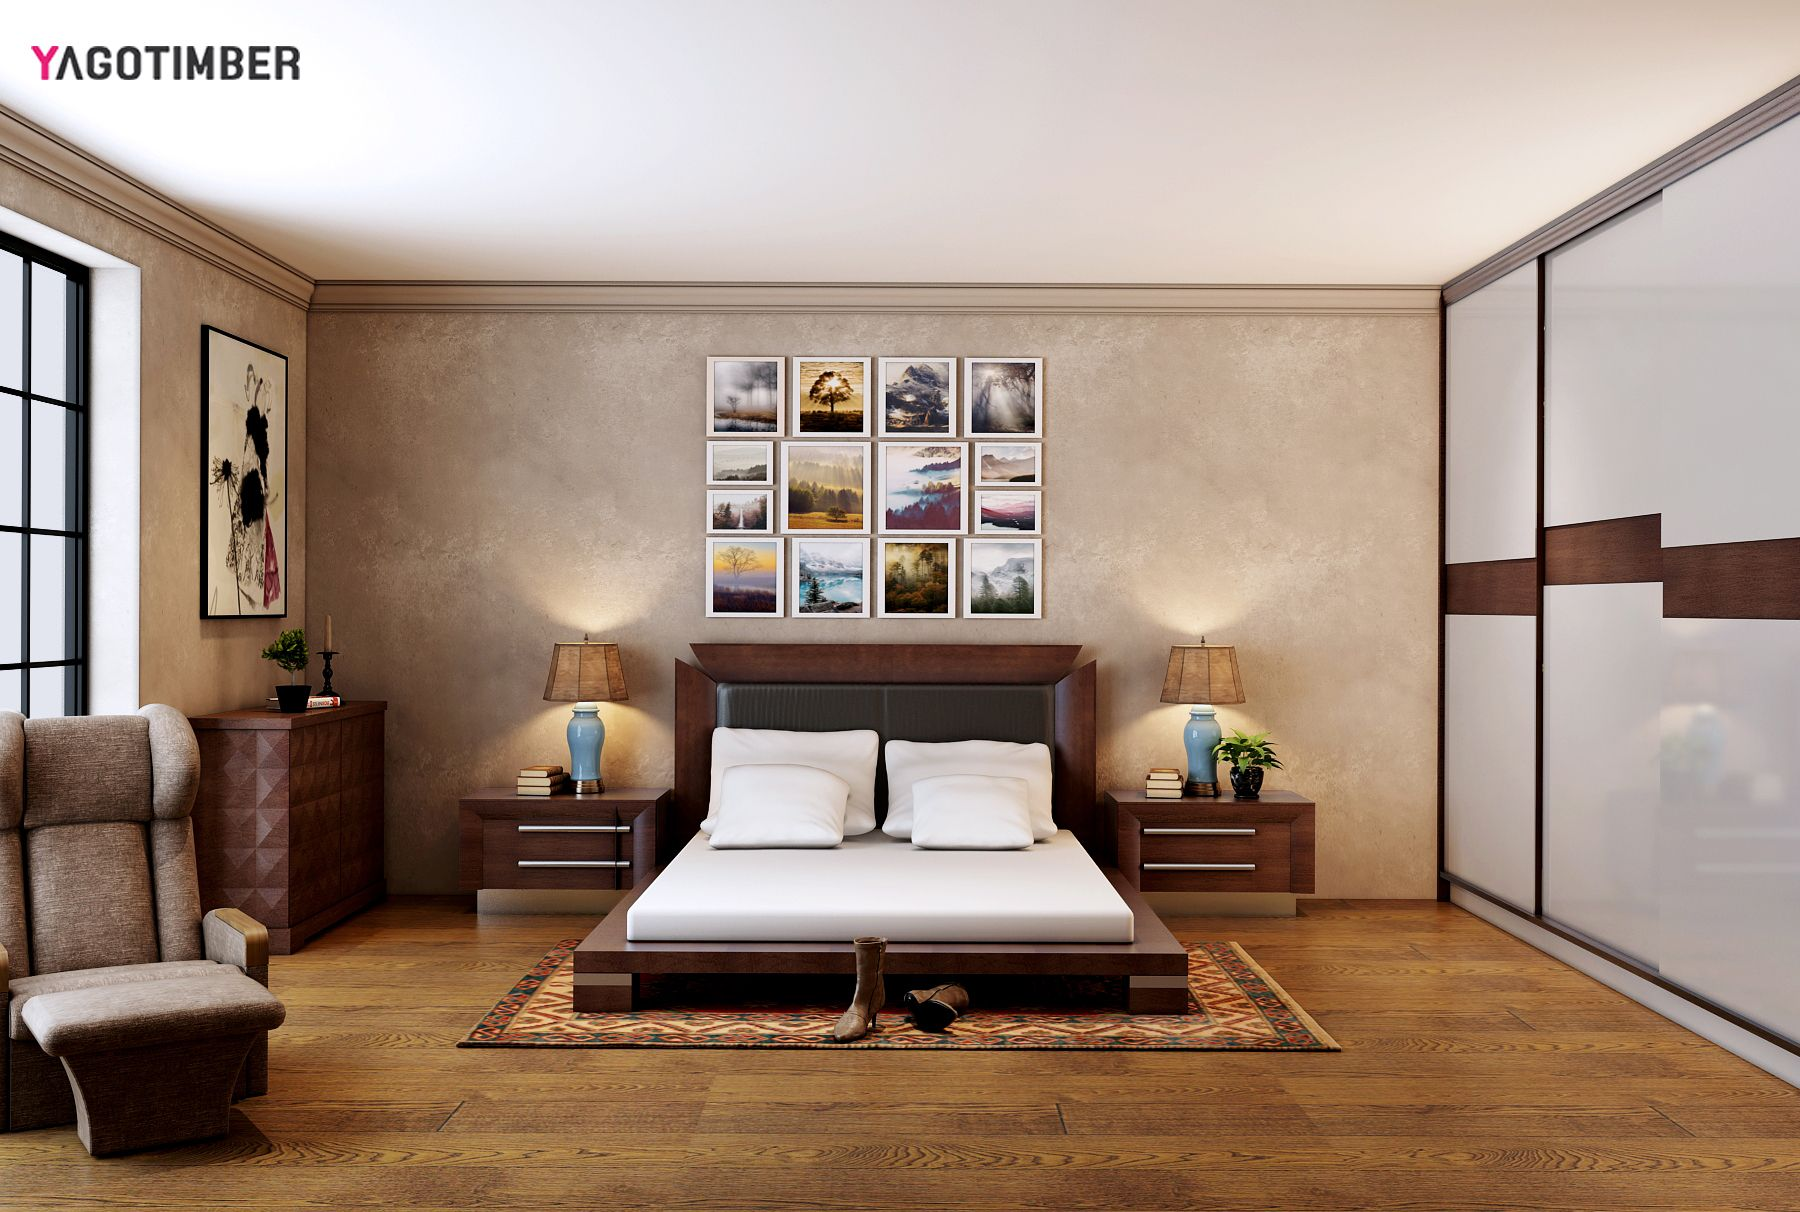 . Get latest Yagotimber s bedroom interior design looks for your  home